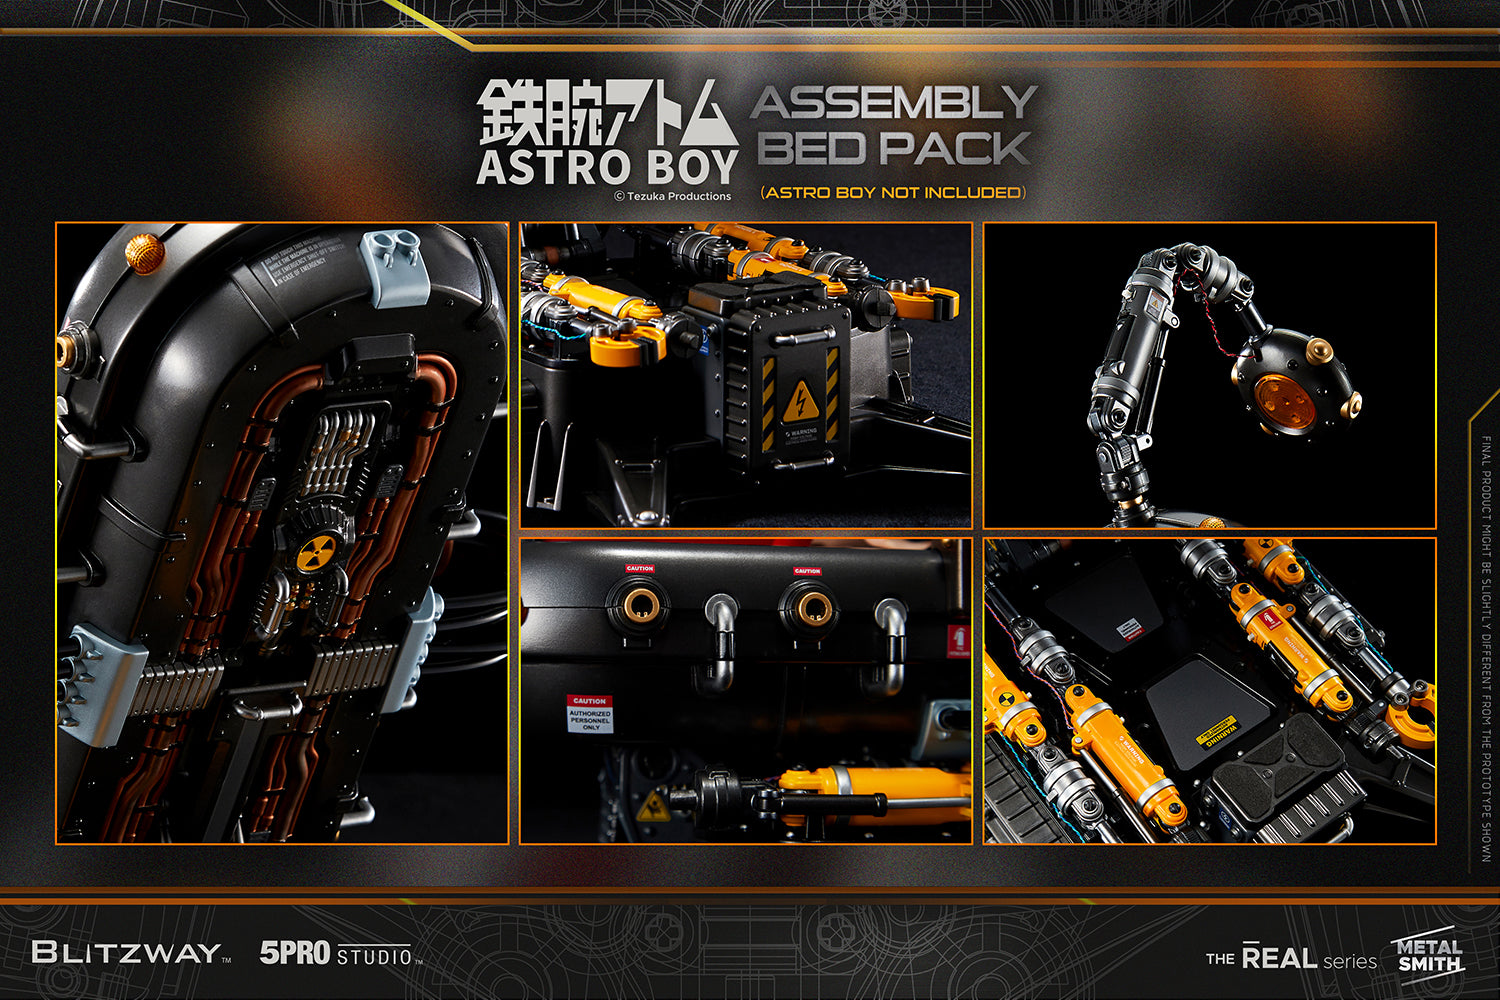 5Pro Studio - The Real Series - Astro Boy Assembly Bed